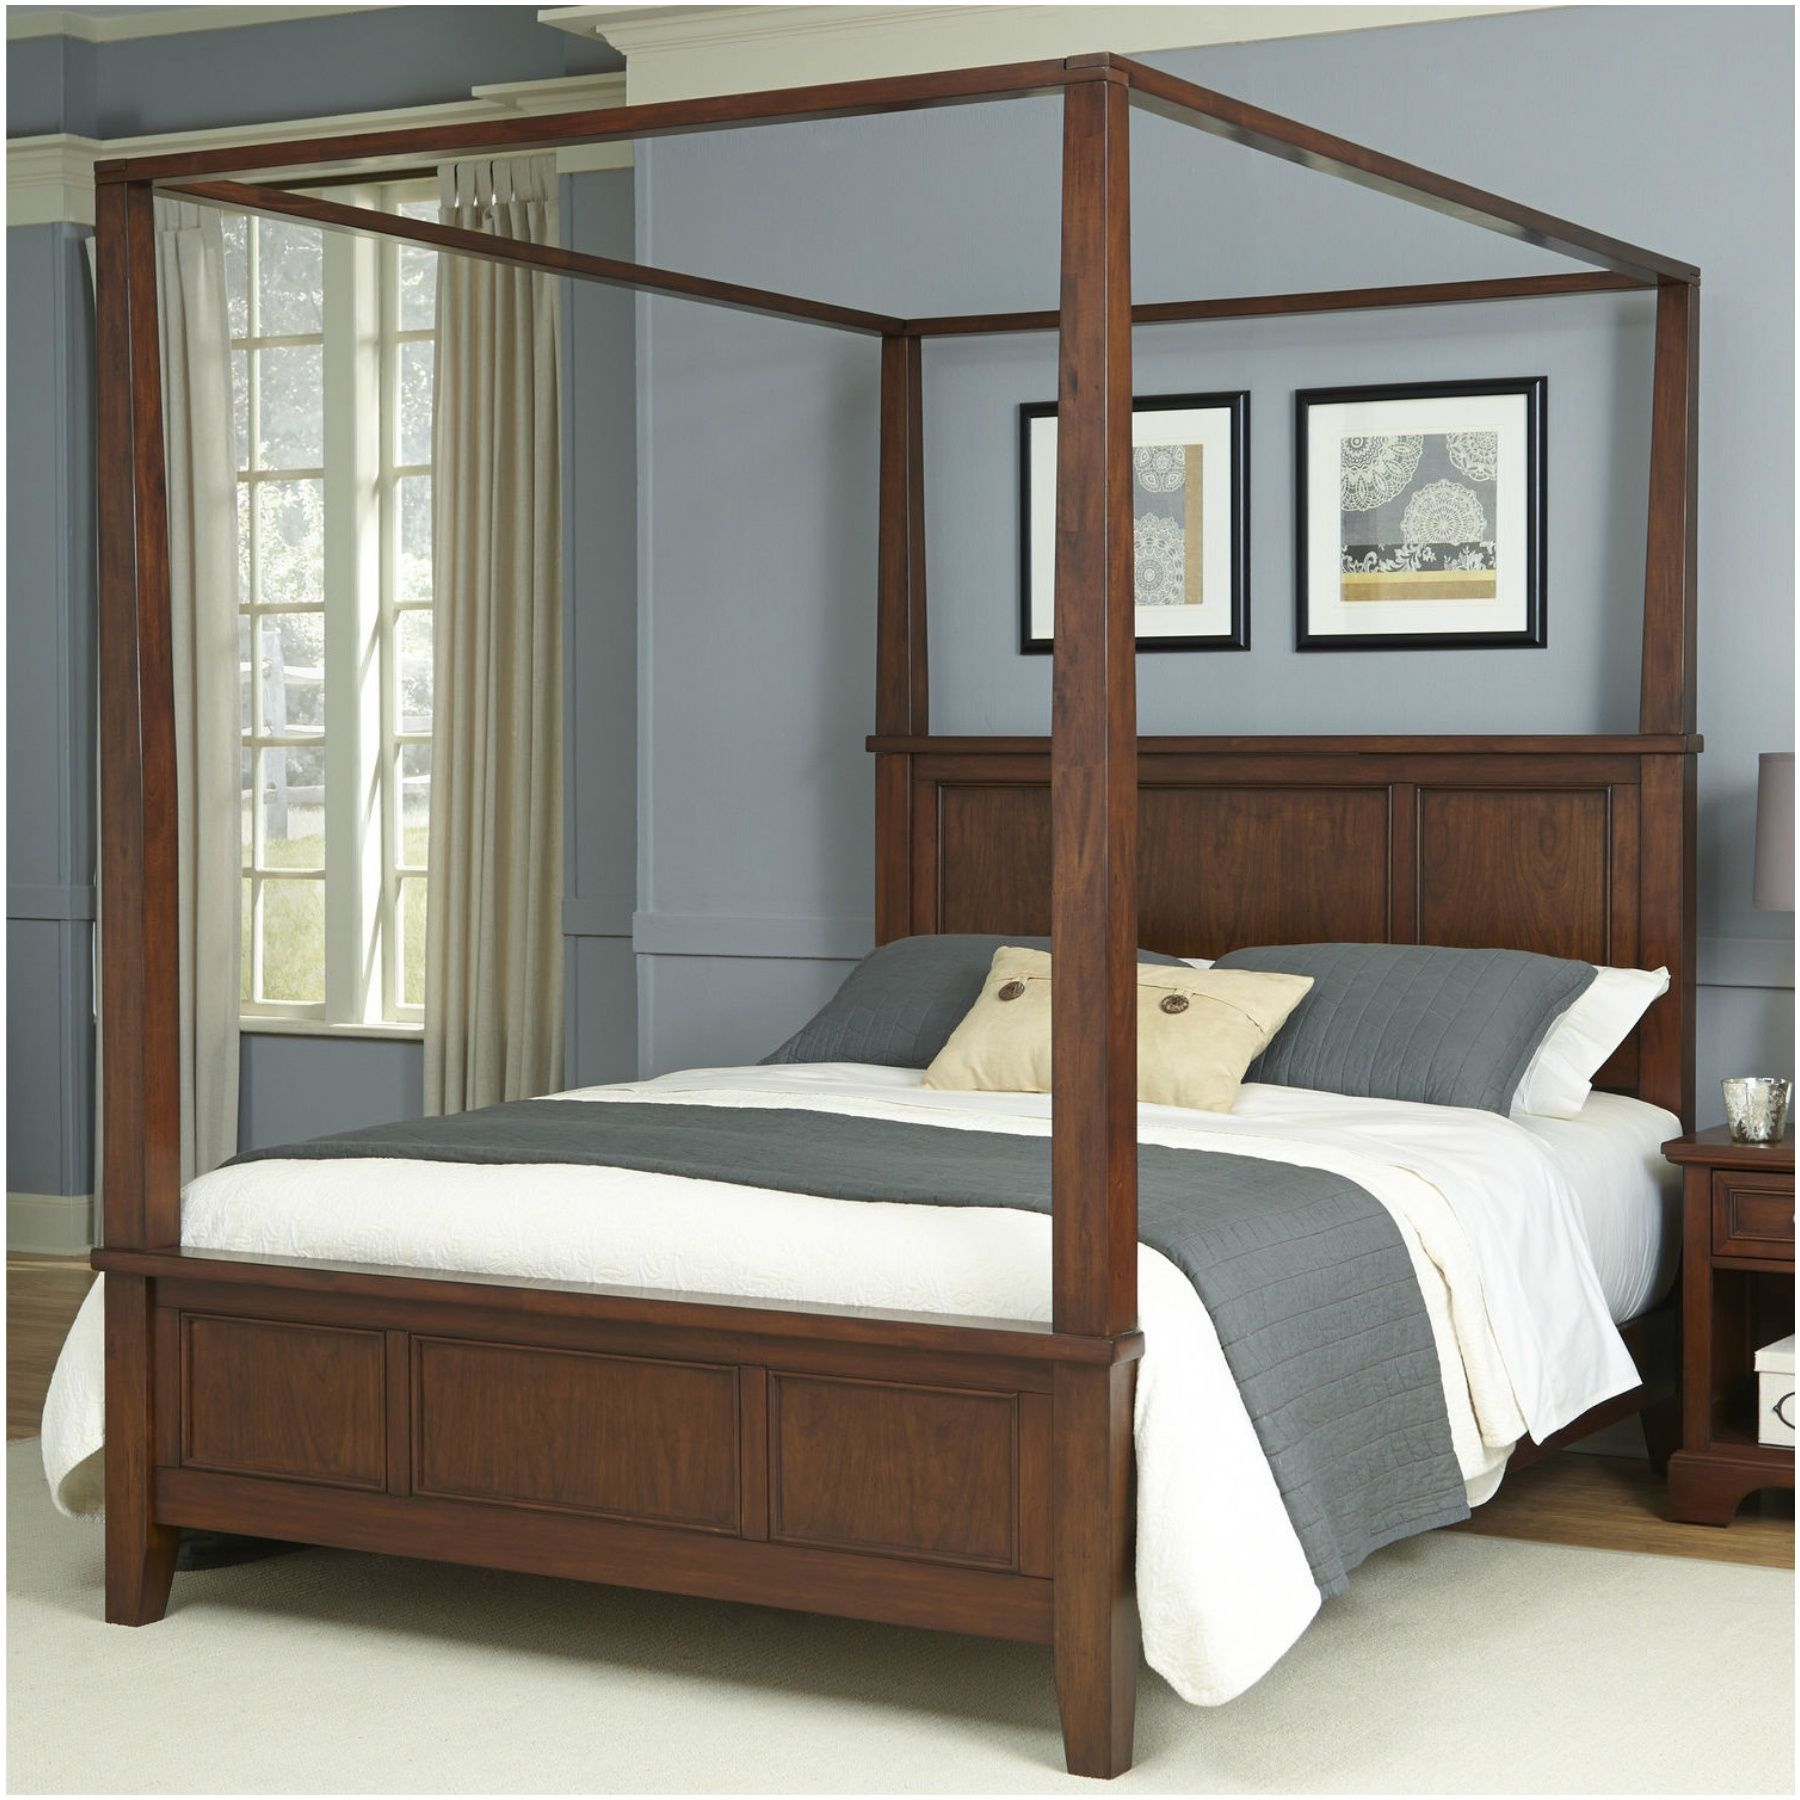 Wood Canopy Bed Frame Full Size Wooden Home New Arrivals Modern